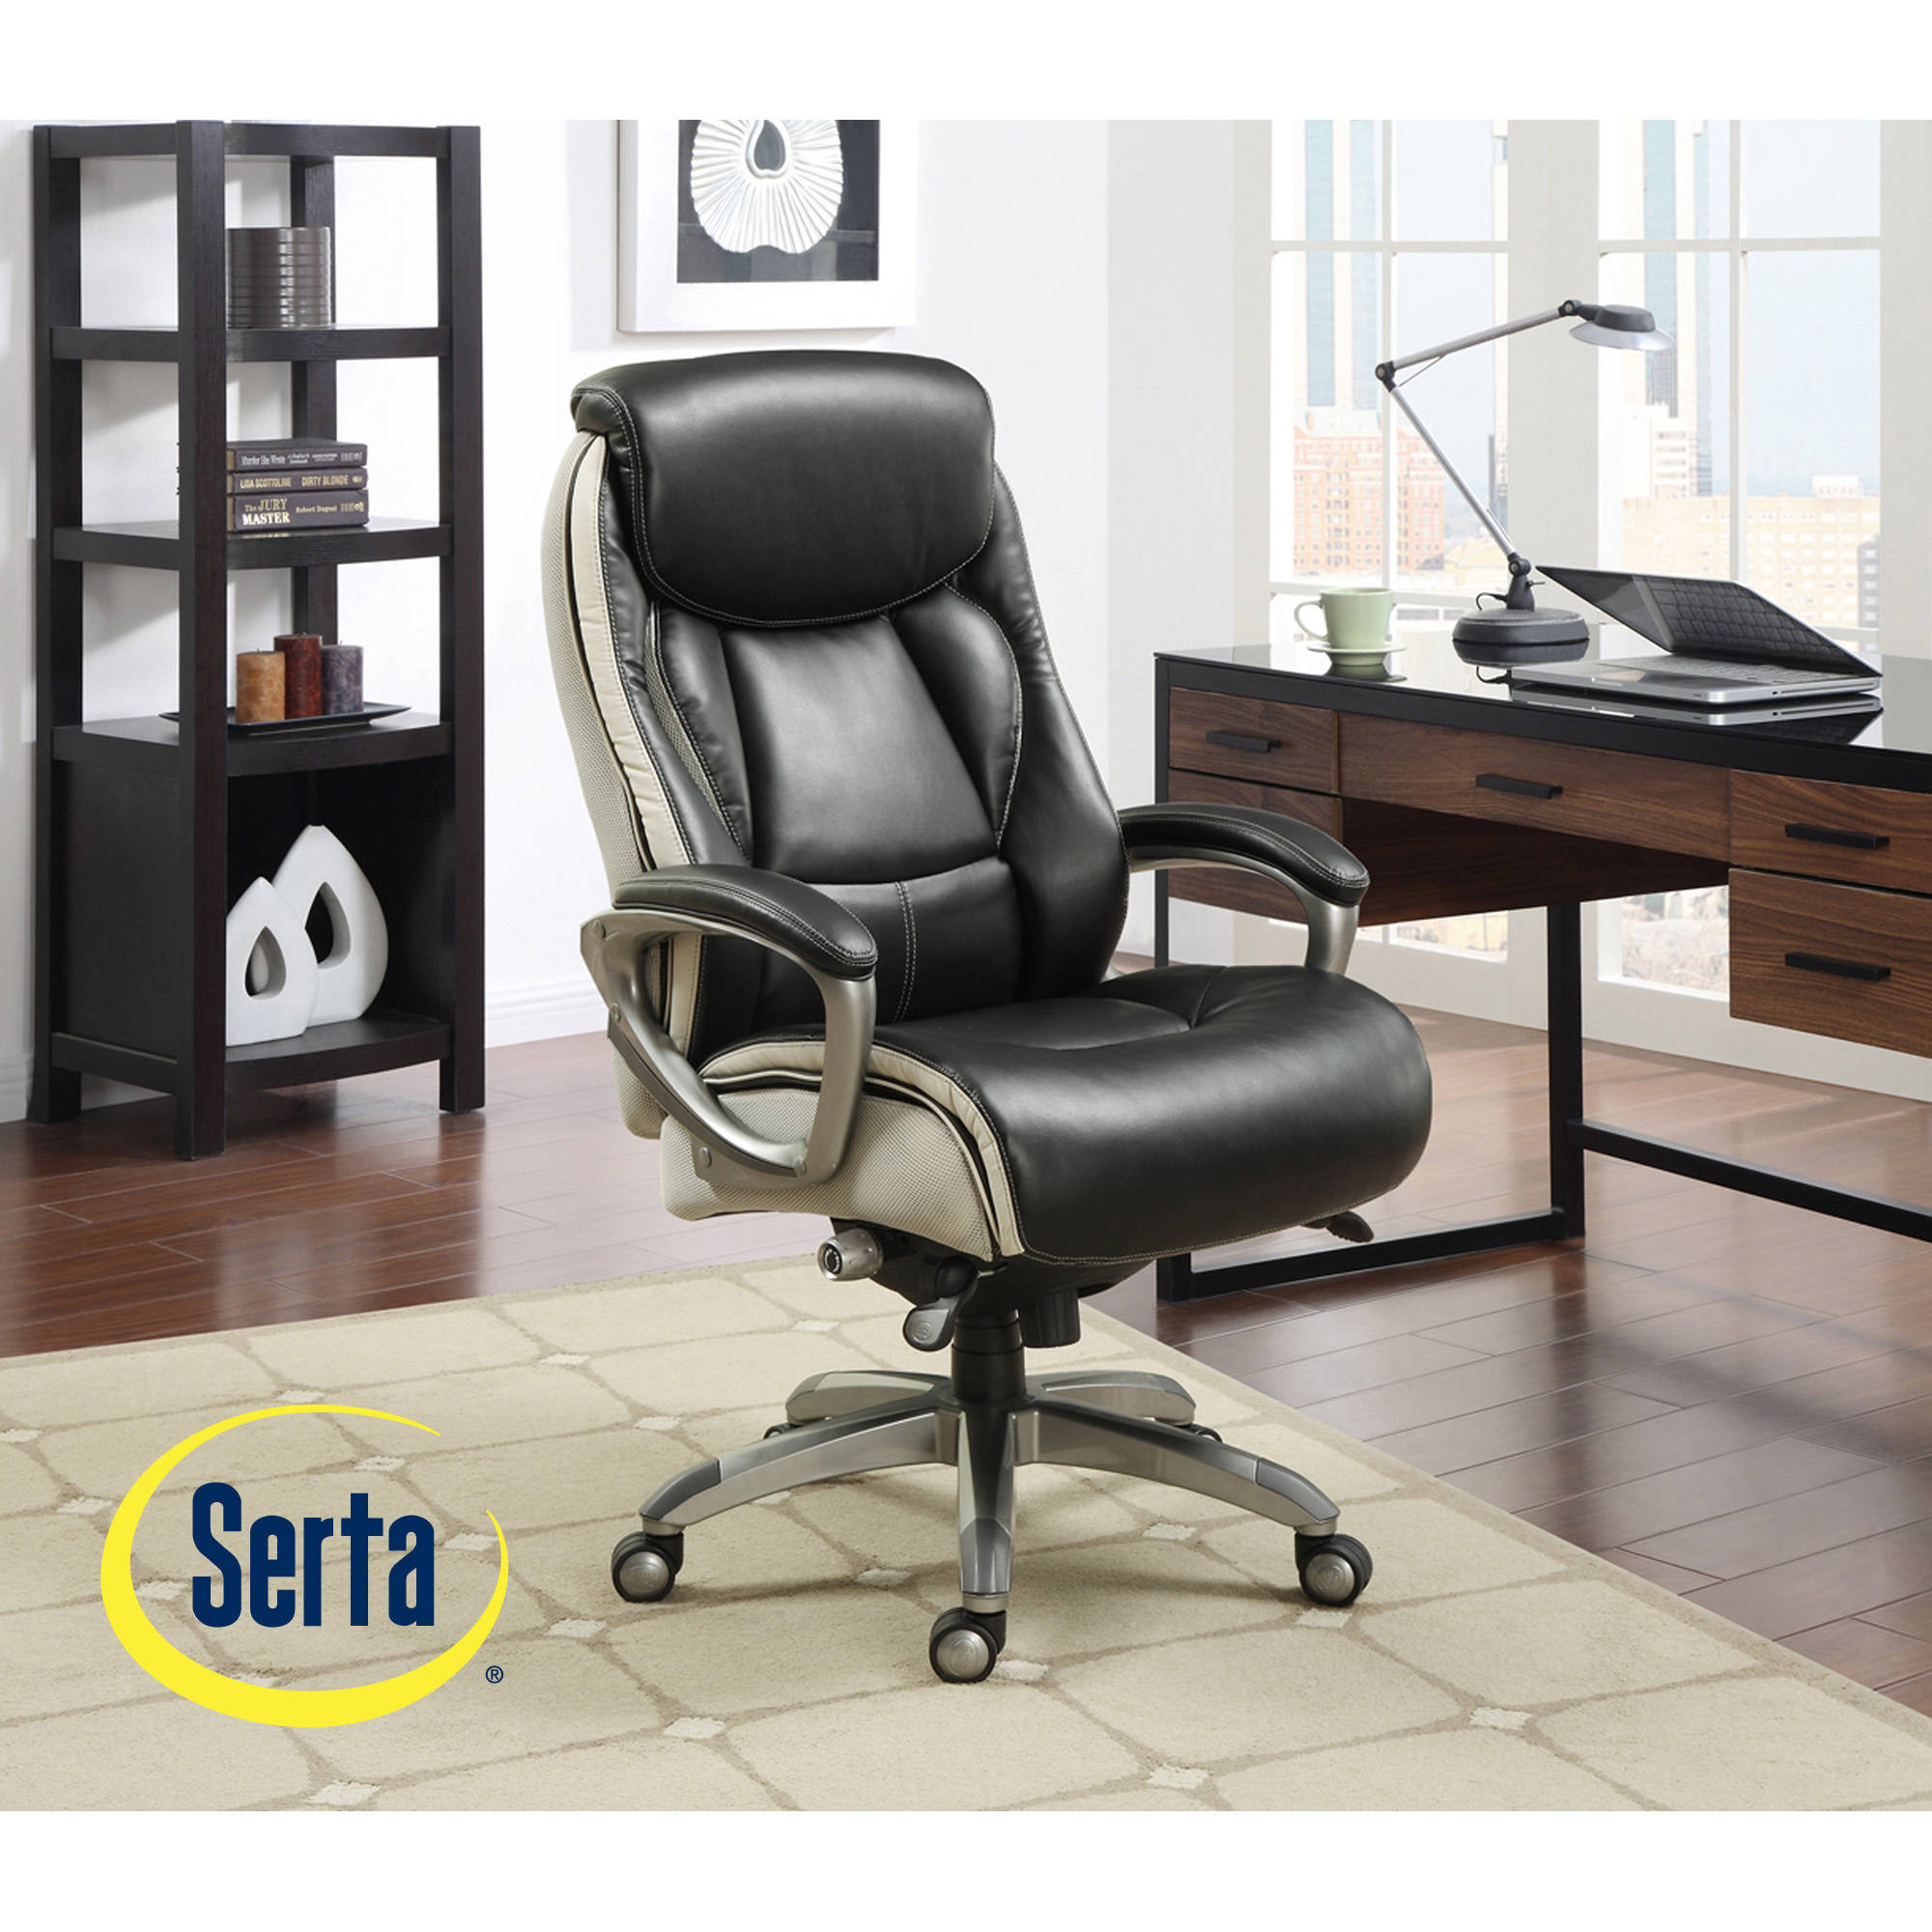 Serta Smart Layers Executive Office Chair, Tranquility   Walmart.com